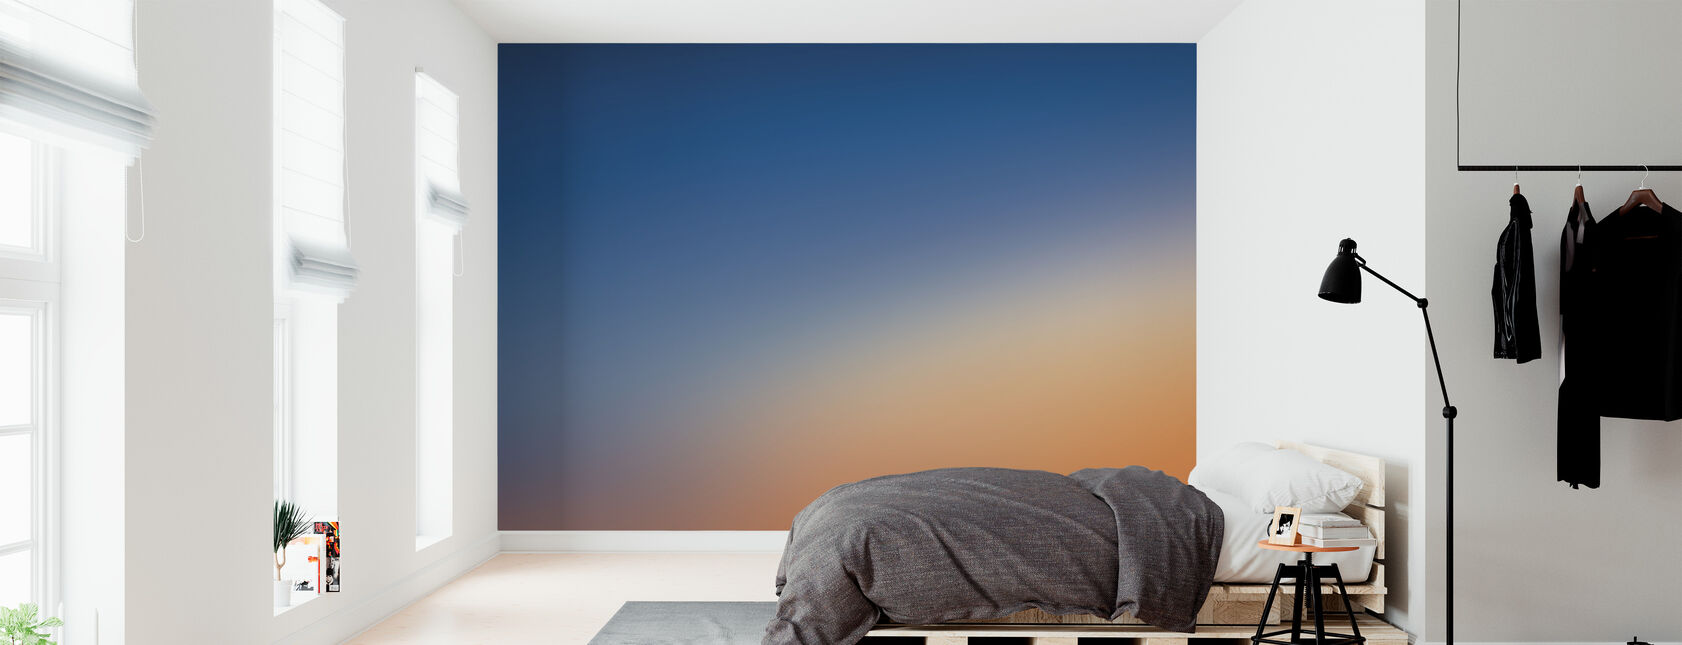 Miami Sunset - Wallpaper - Bedroom